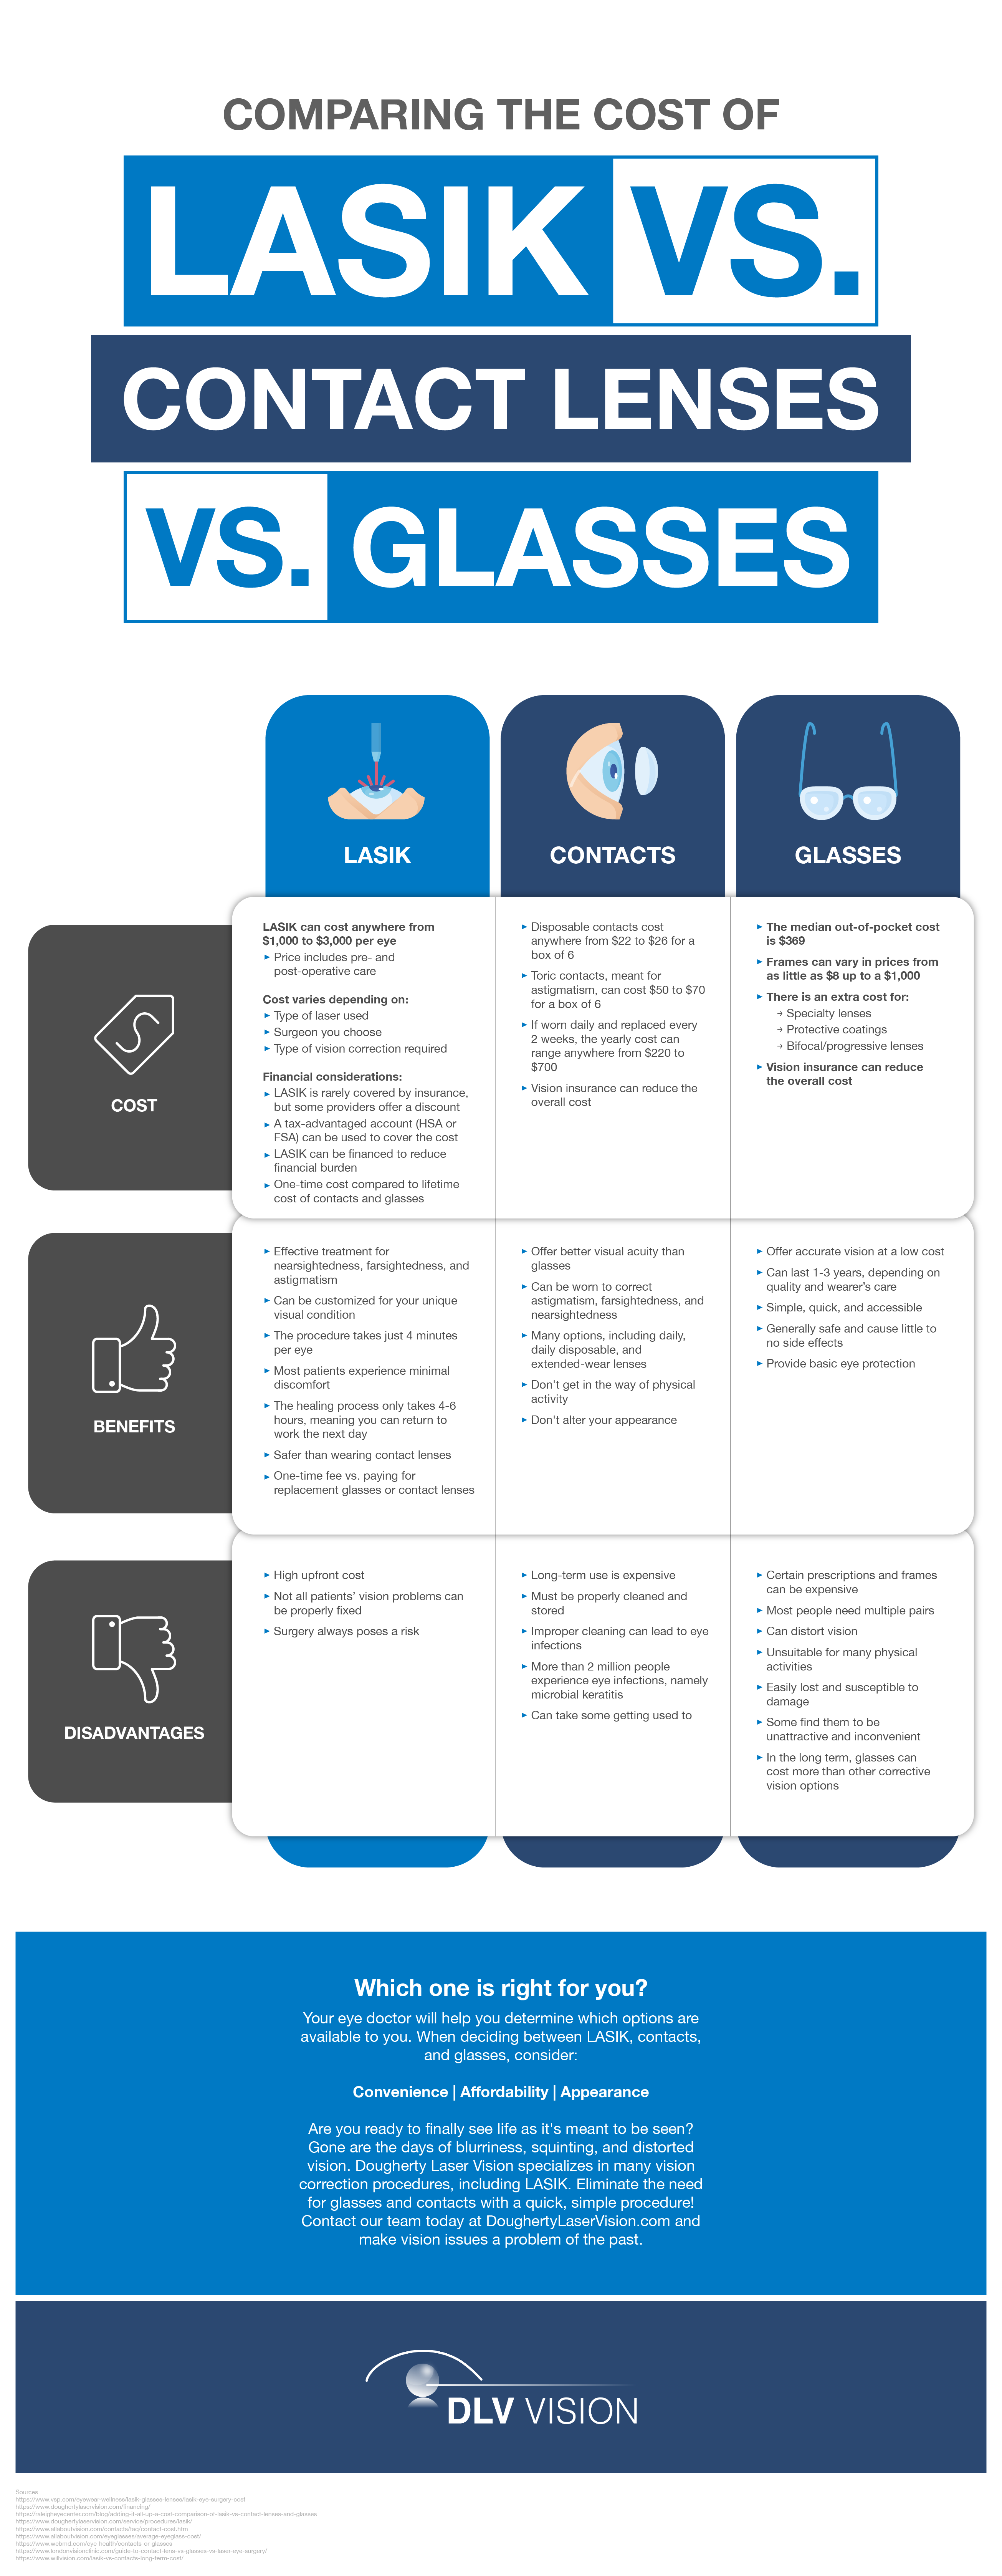 Comparing the Cost of LASIK vs. Contact Lenses vs. Glasses Infographic